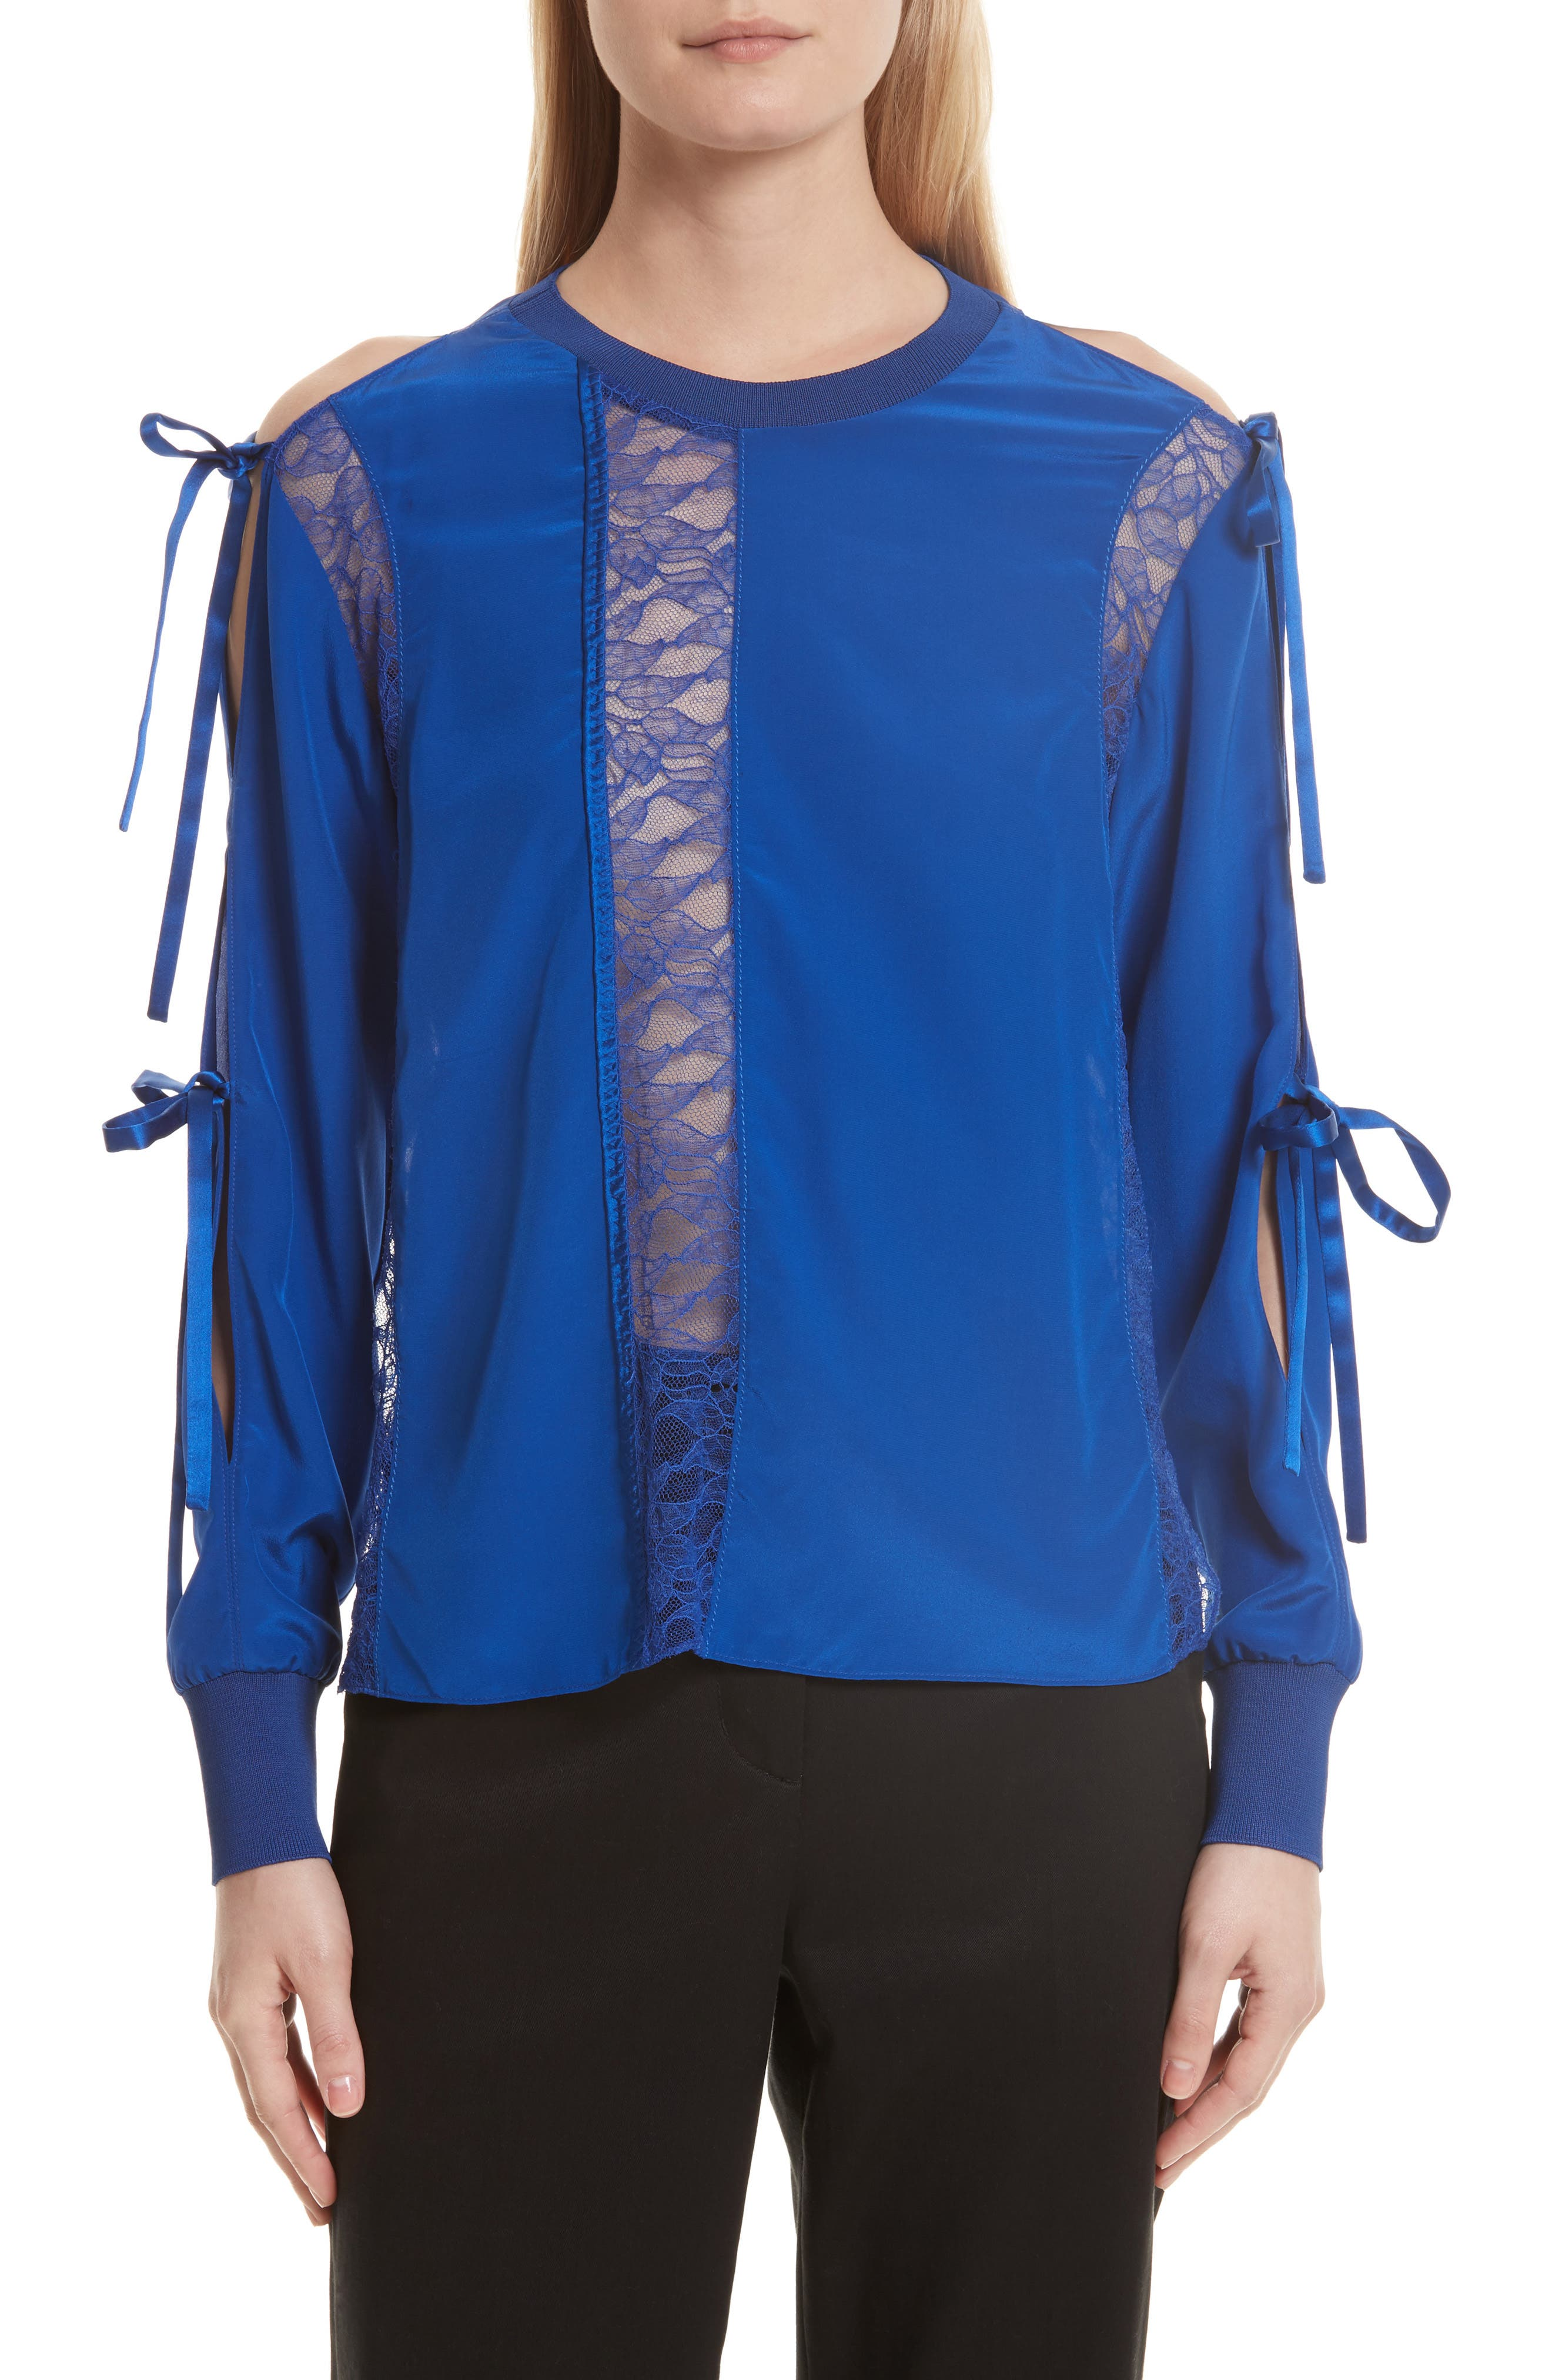 3.1 Phillip Lim Silk Tied Cold Shoulder Top